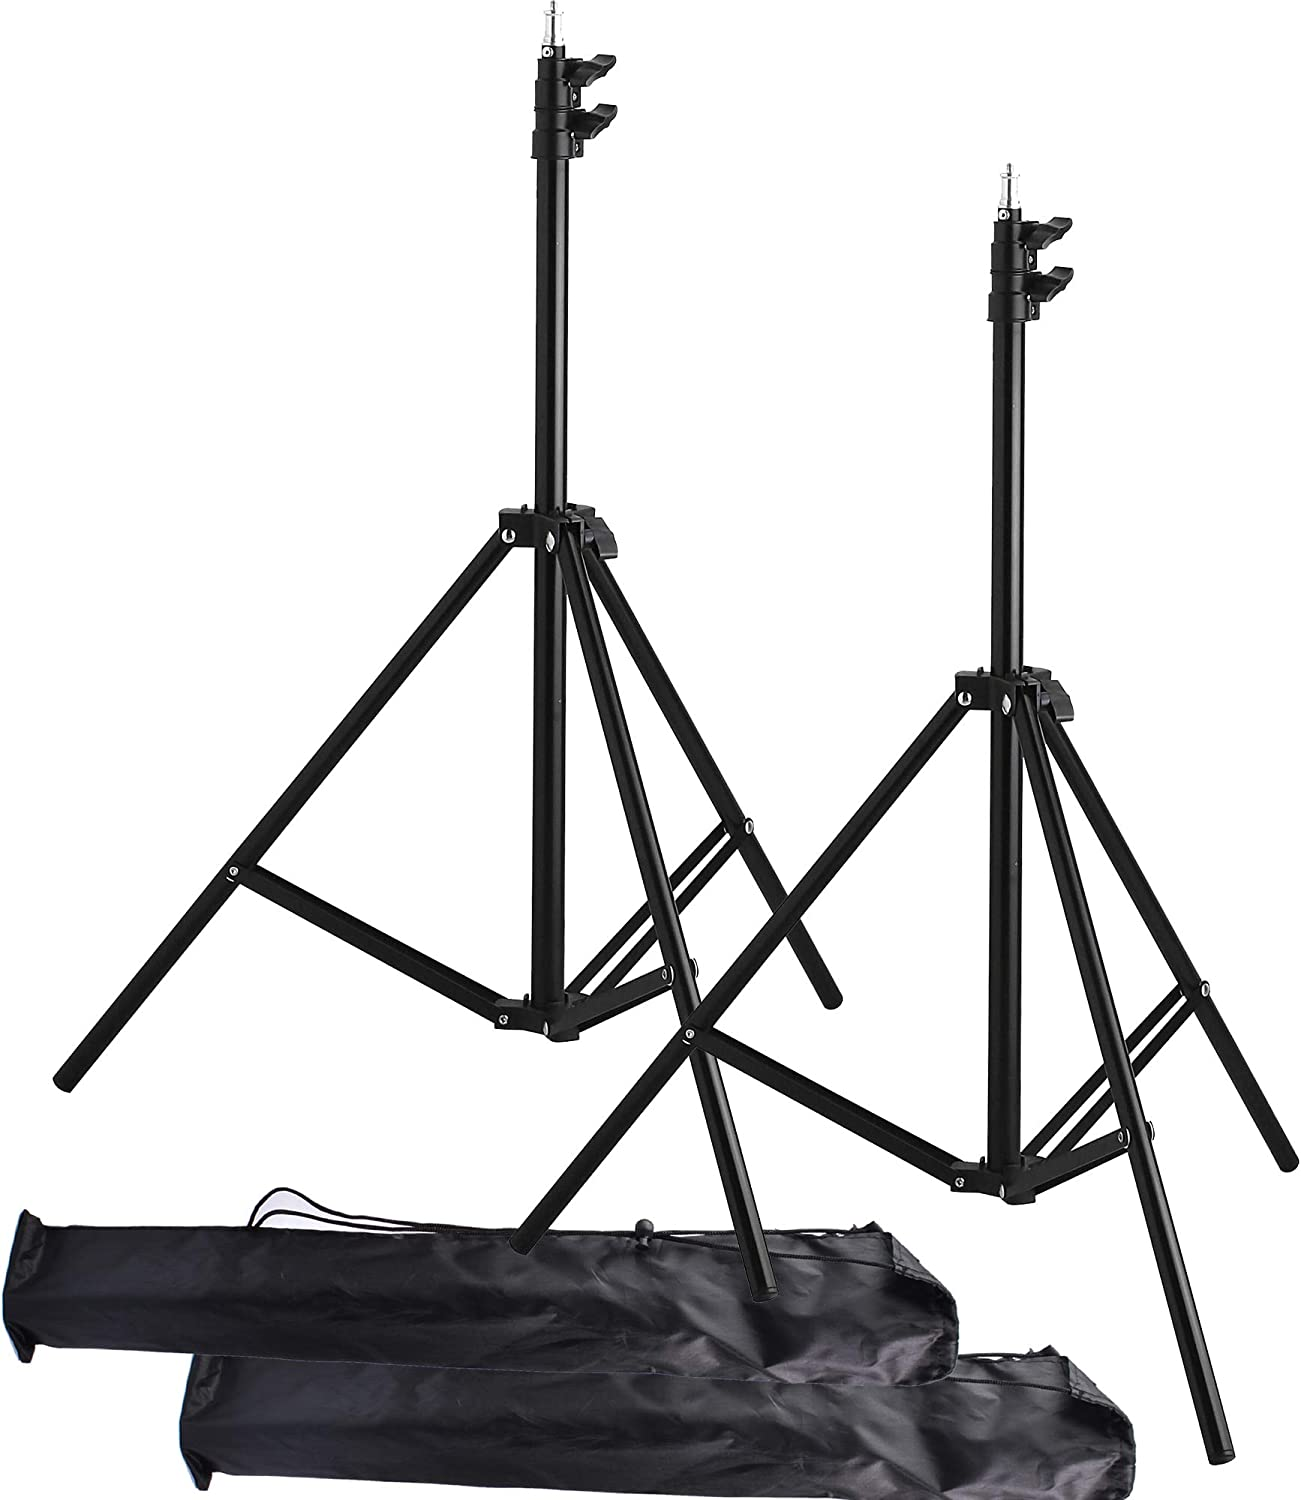 Max 87% OFF Light Stand Tripod 2Packs Riqiorod Alloy Discount is also underway Feet Aluminum 7 Photog